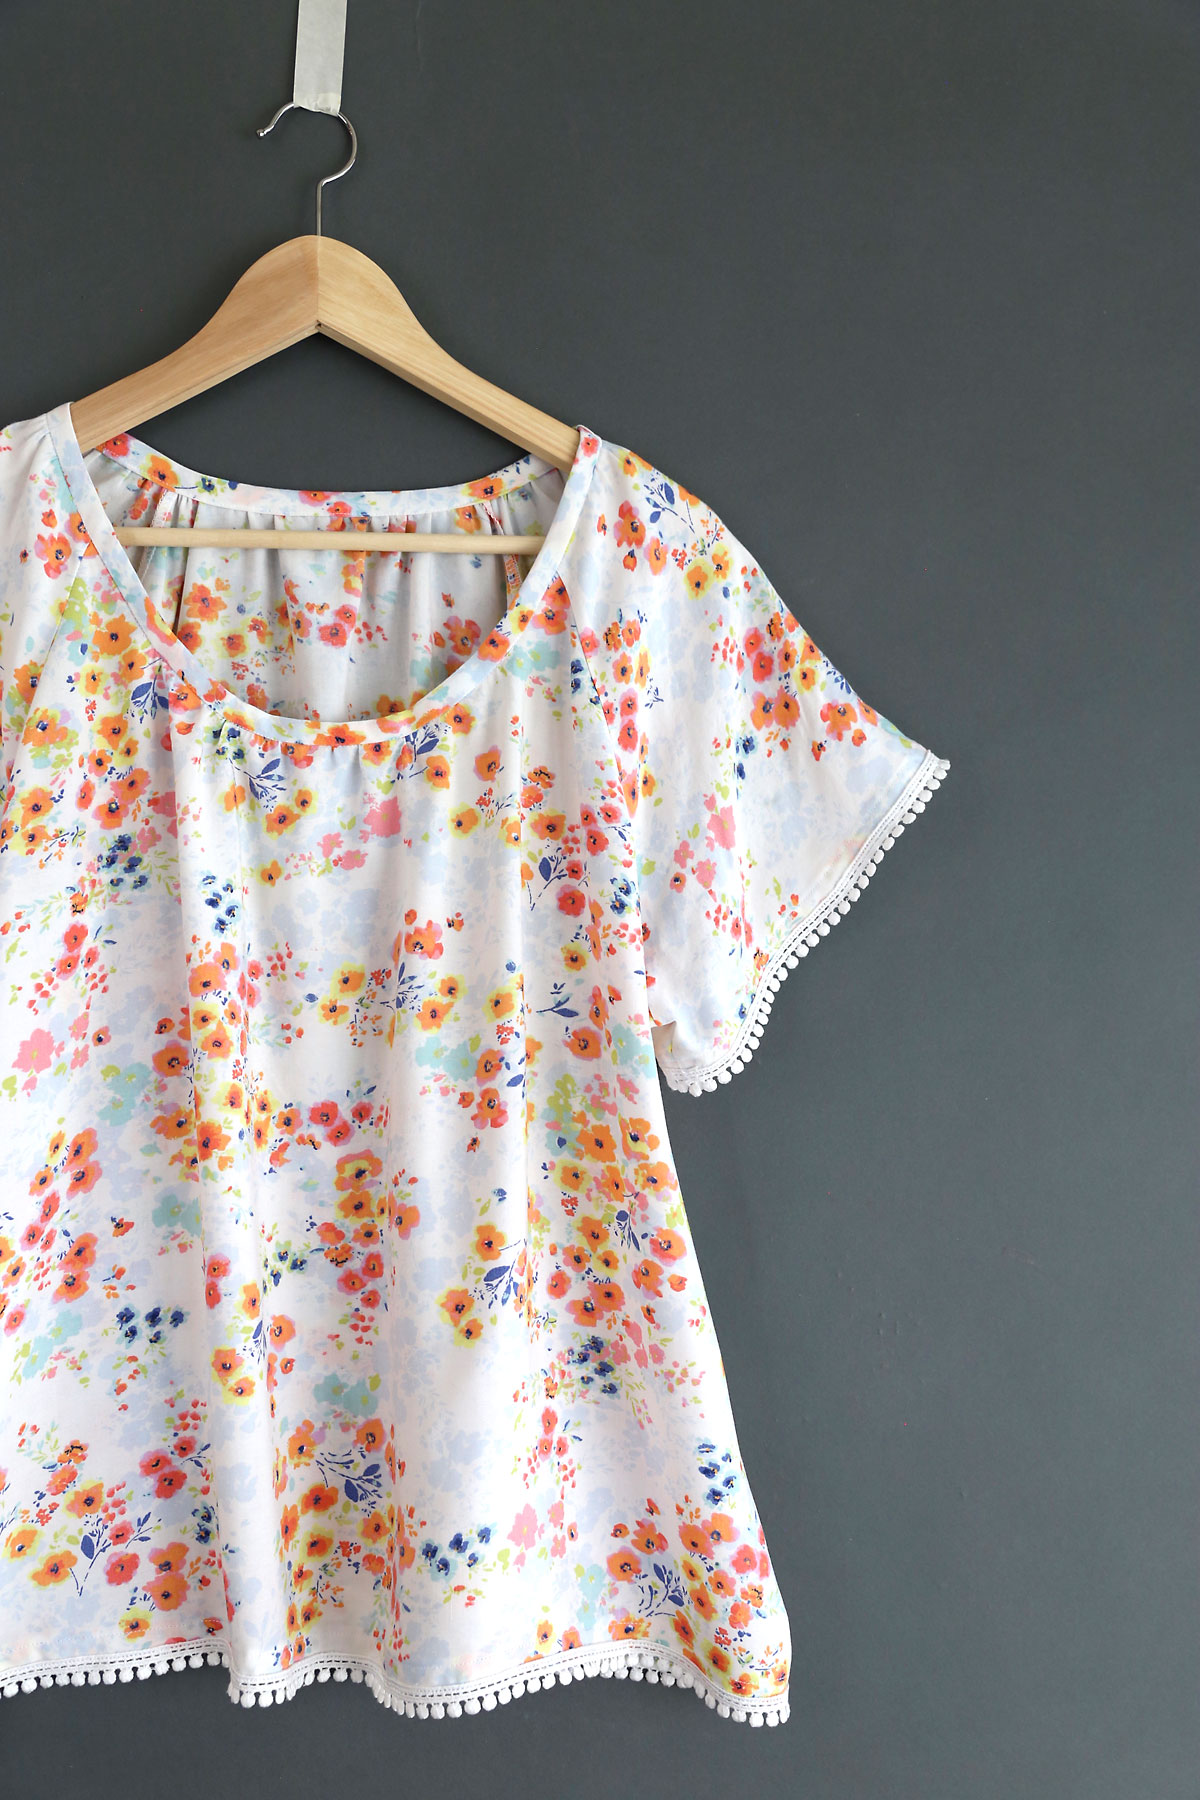 A close up of a handmade blouse with pink flowers and pom pom trim